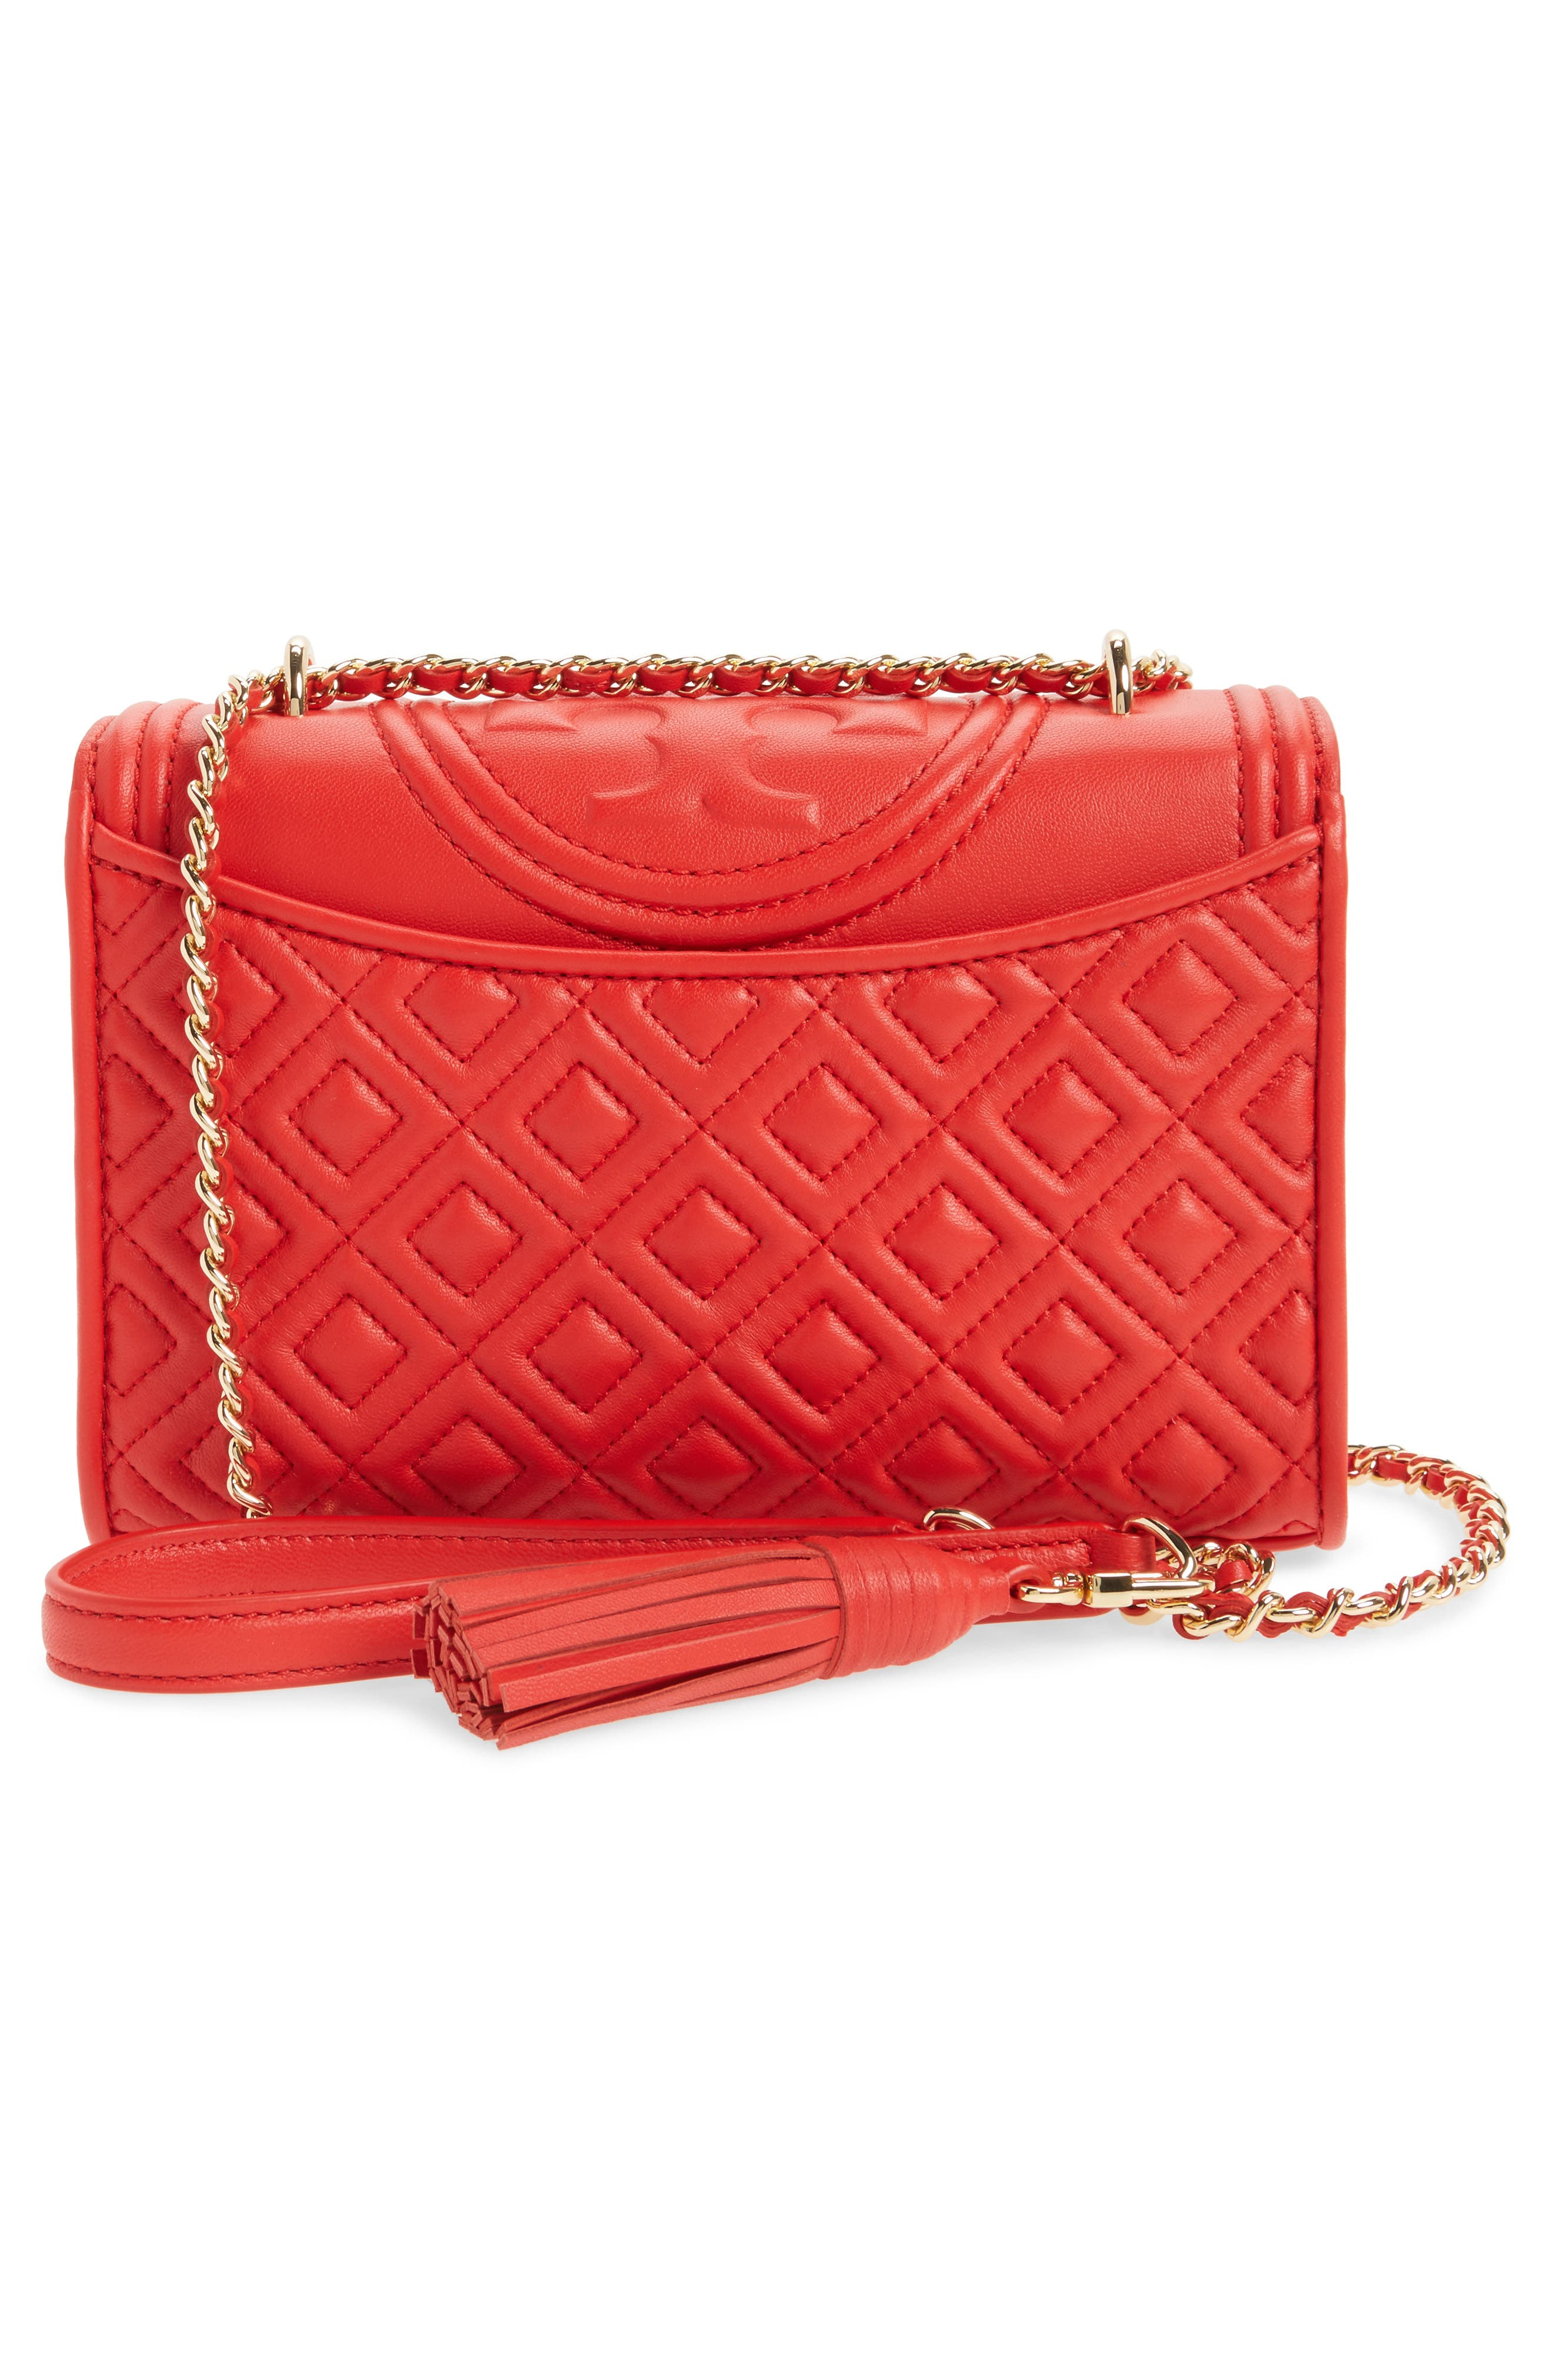 'Small Fleming' Quilted Leather Shoulder Bag,                             Alternate thumbnail 12, color,